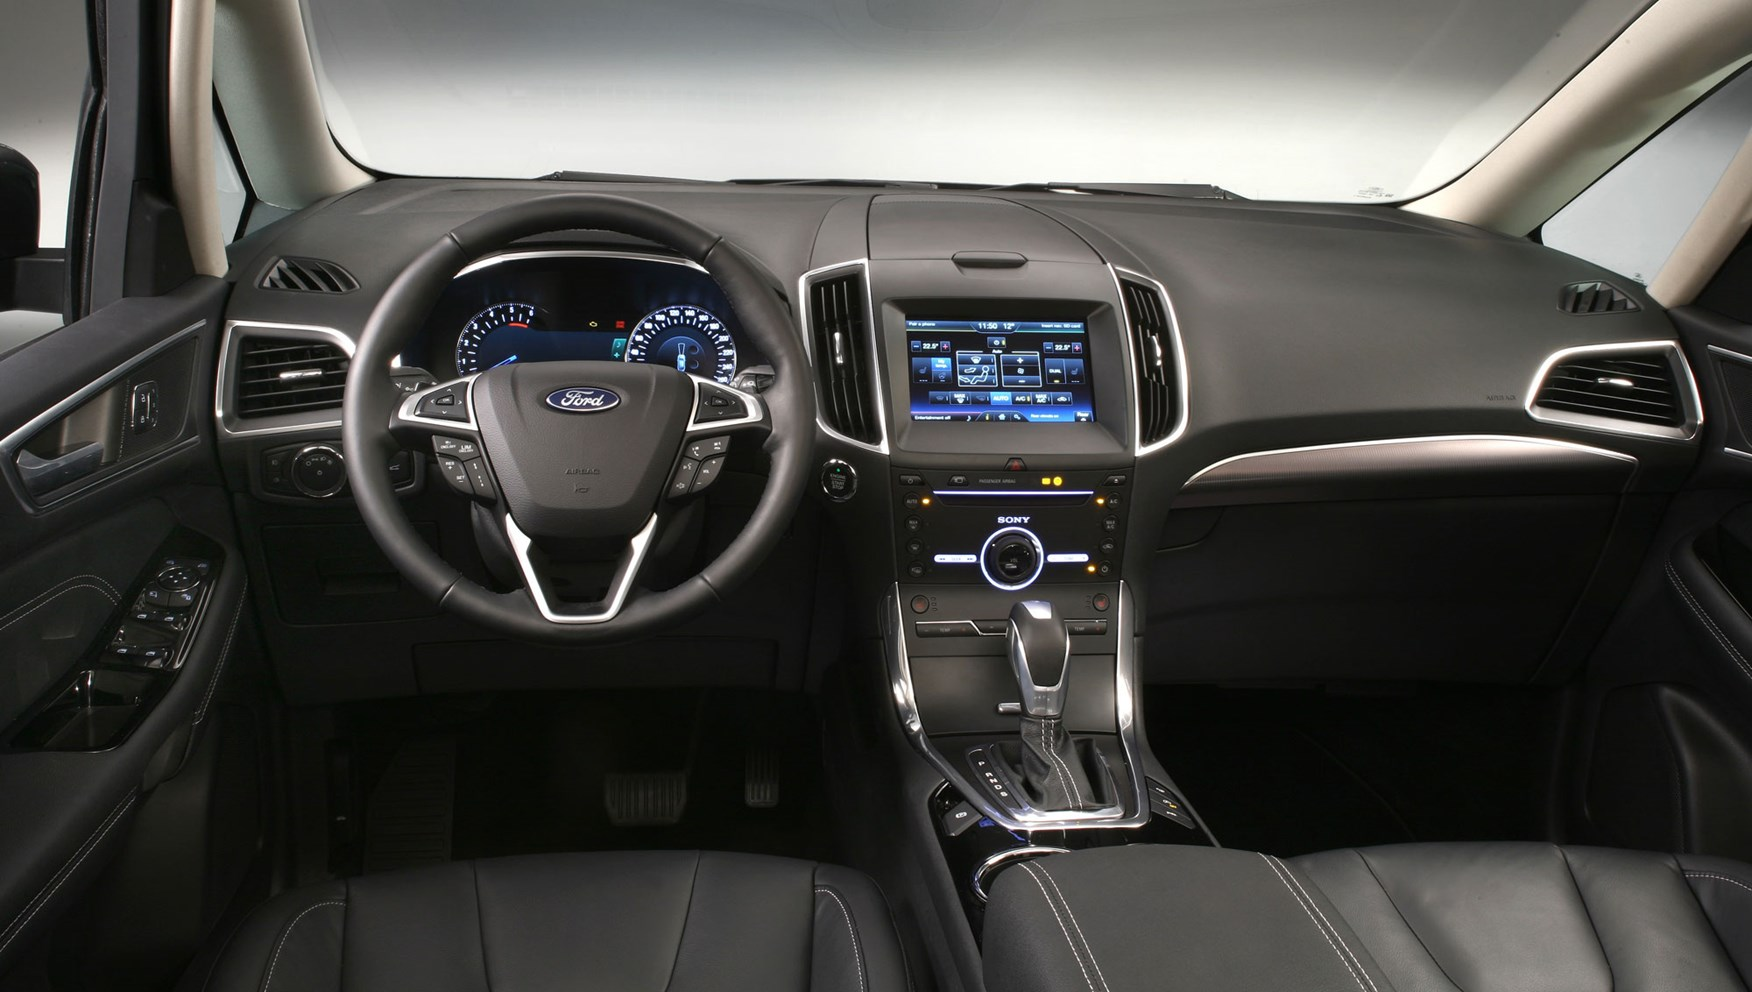 Ford Mondeo 2015 Interior >> New Ford Galaxy (2015): the S-Max's sensible twin by CAR Magazine